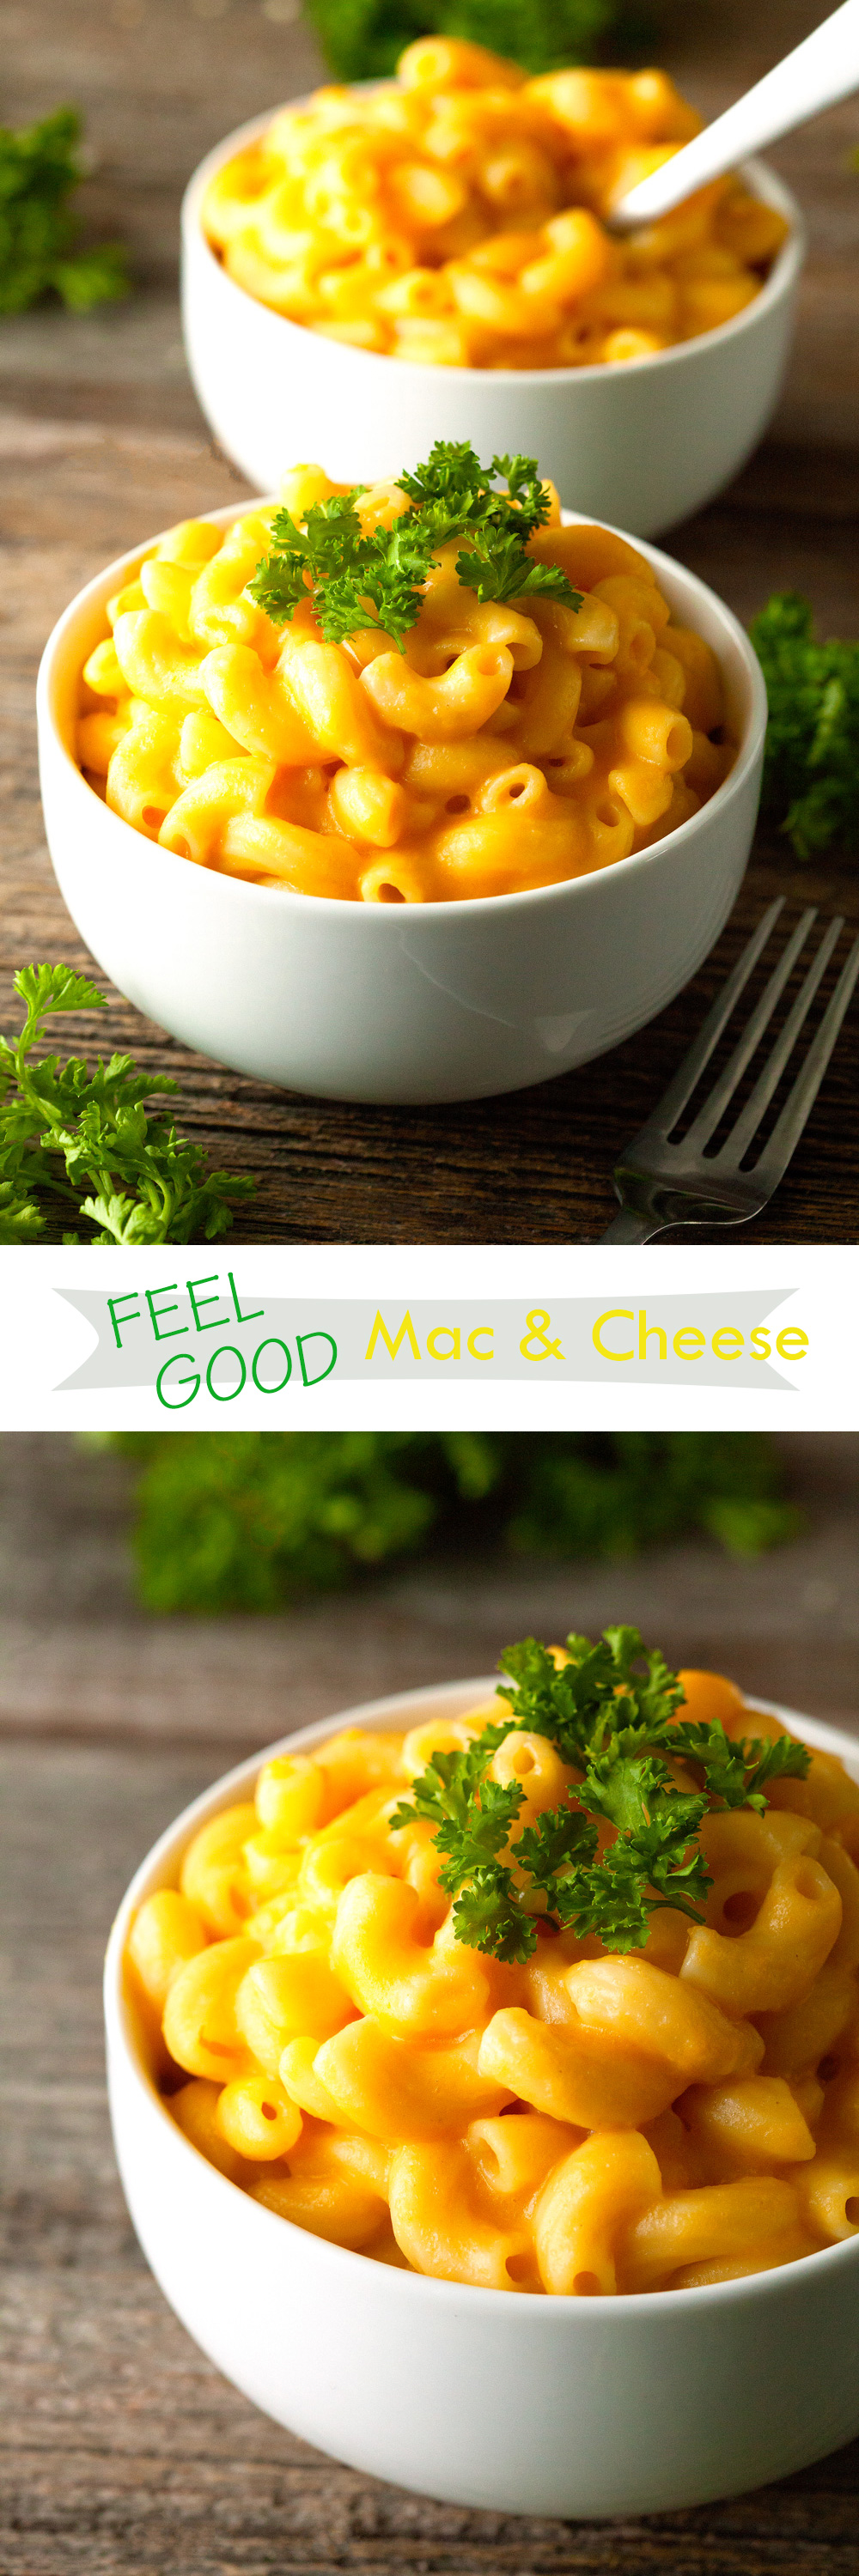 feel-good-mac-and-cheese